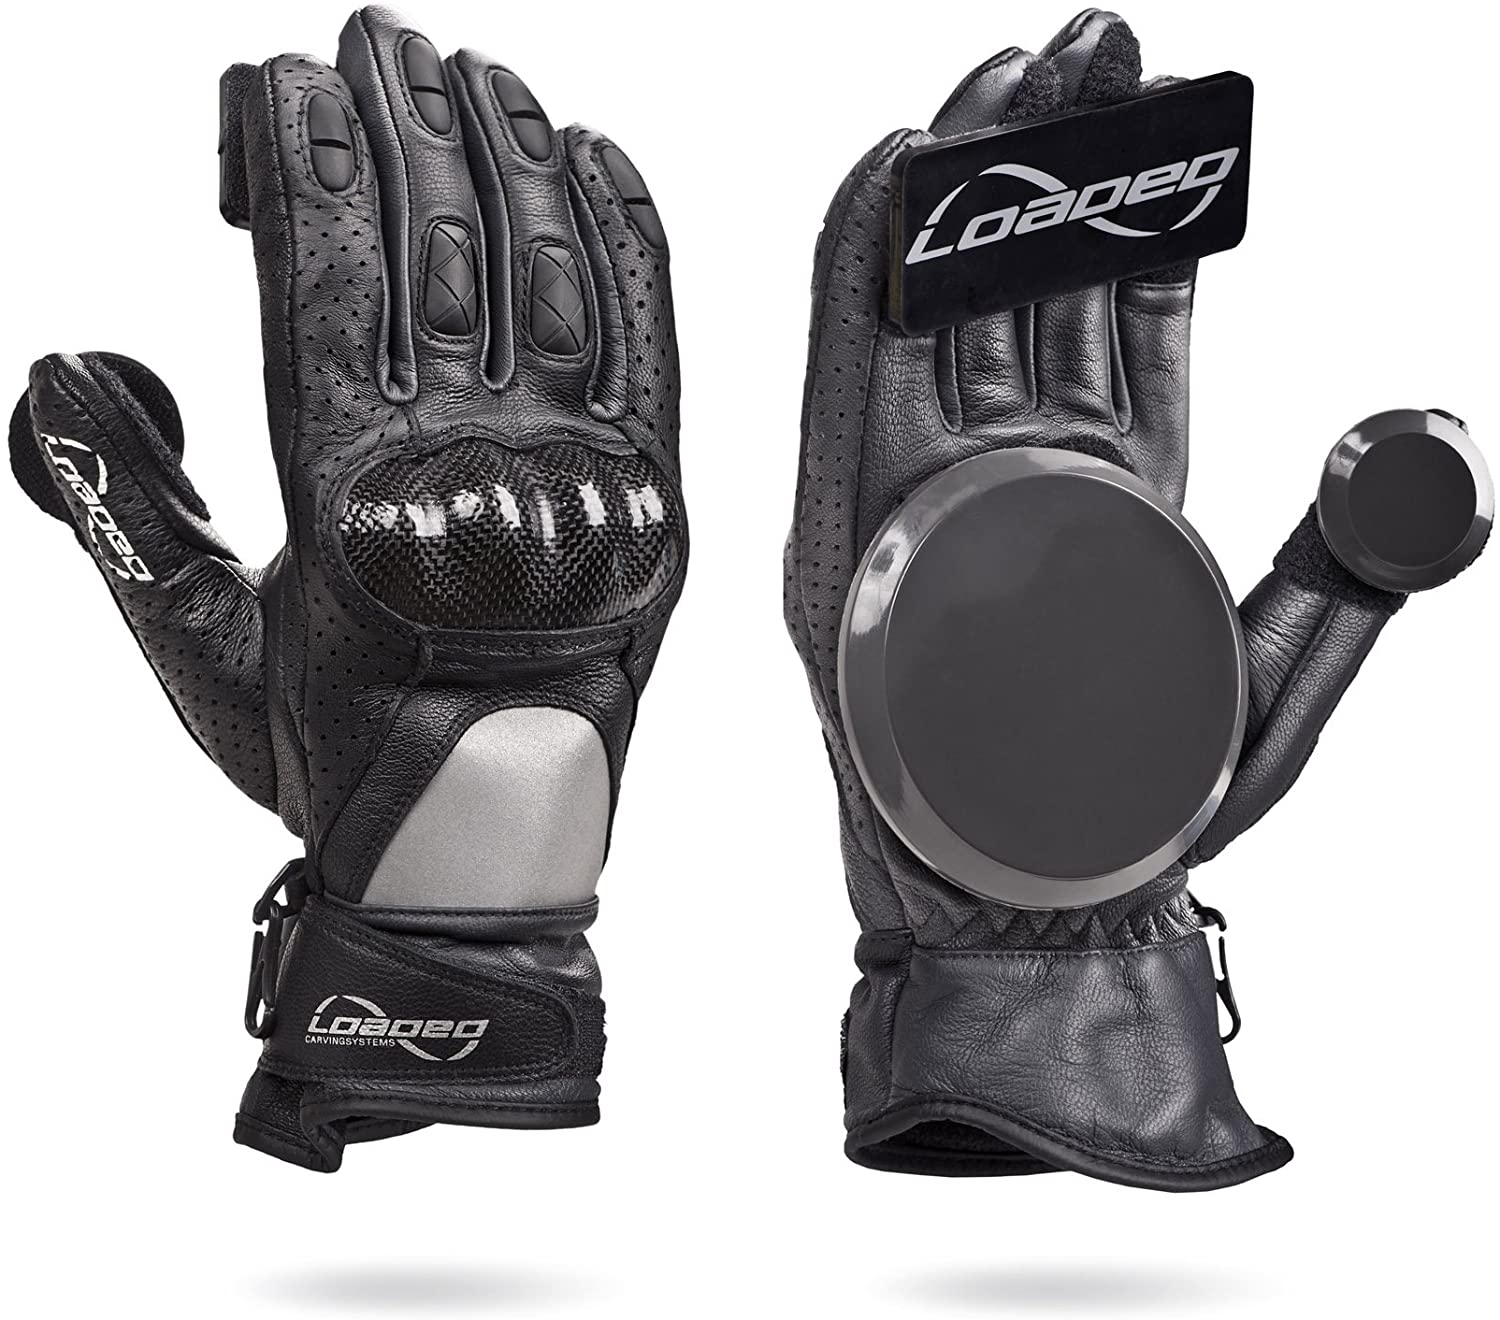 Loaded Boards Leather Downhill Slide Glove